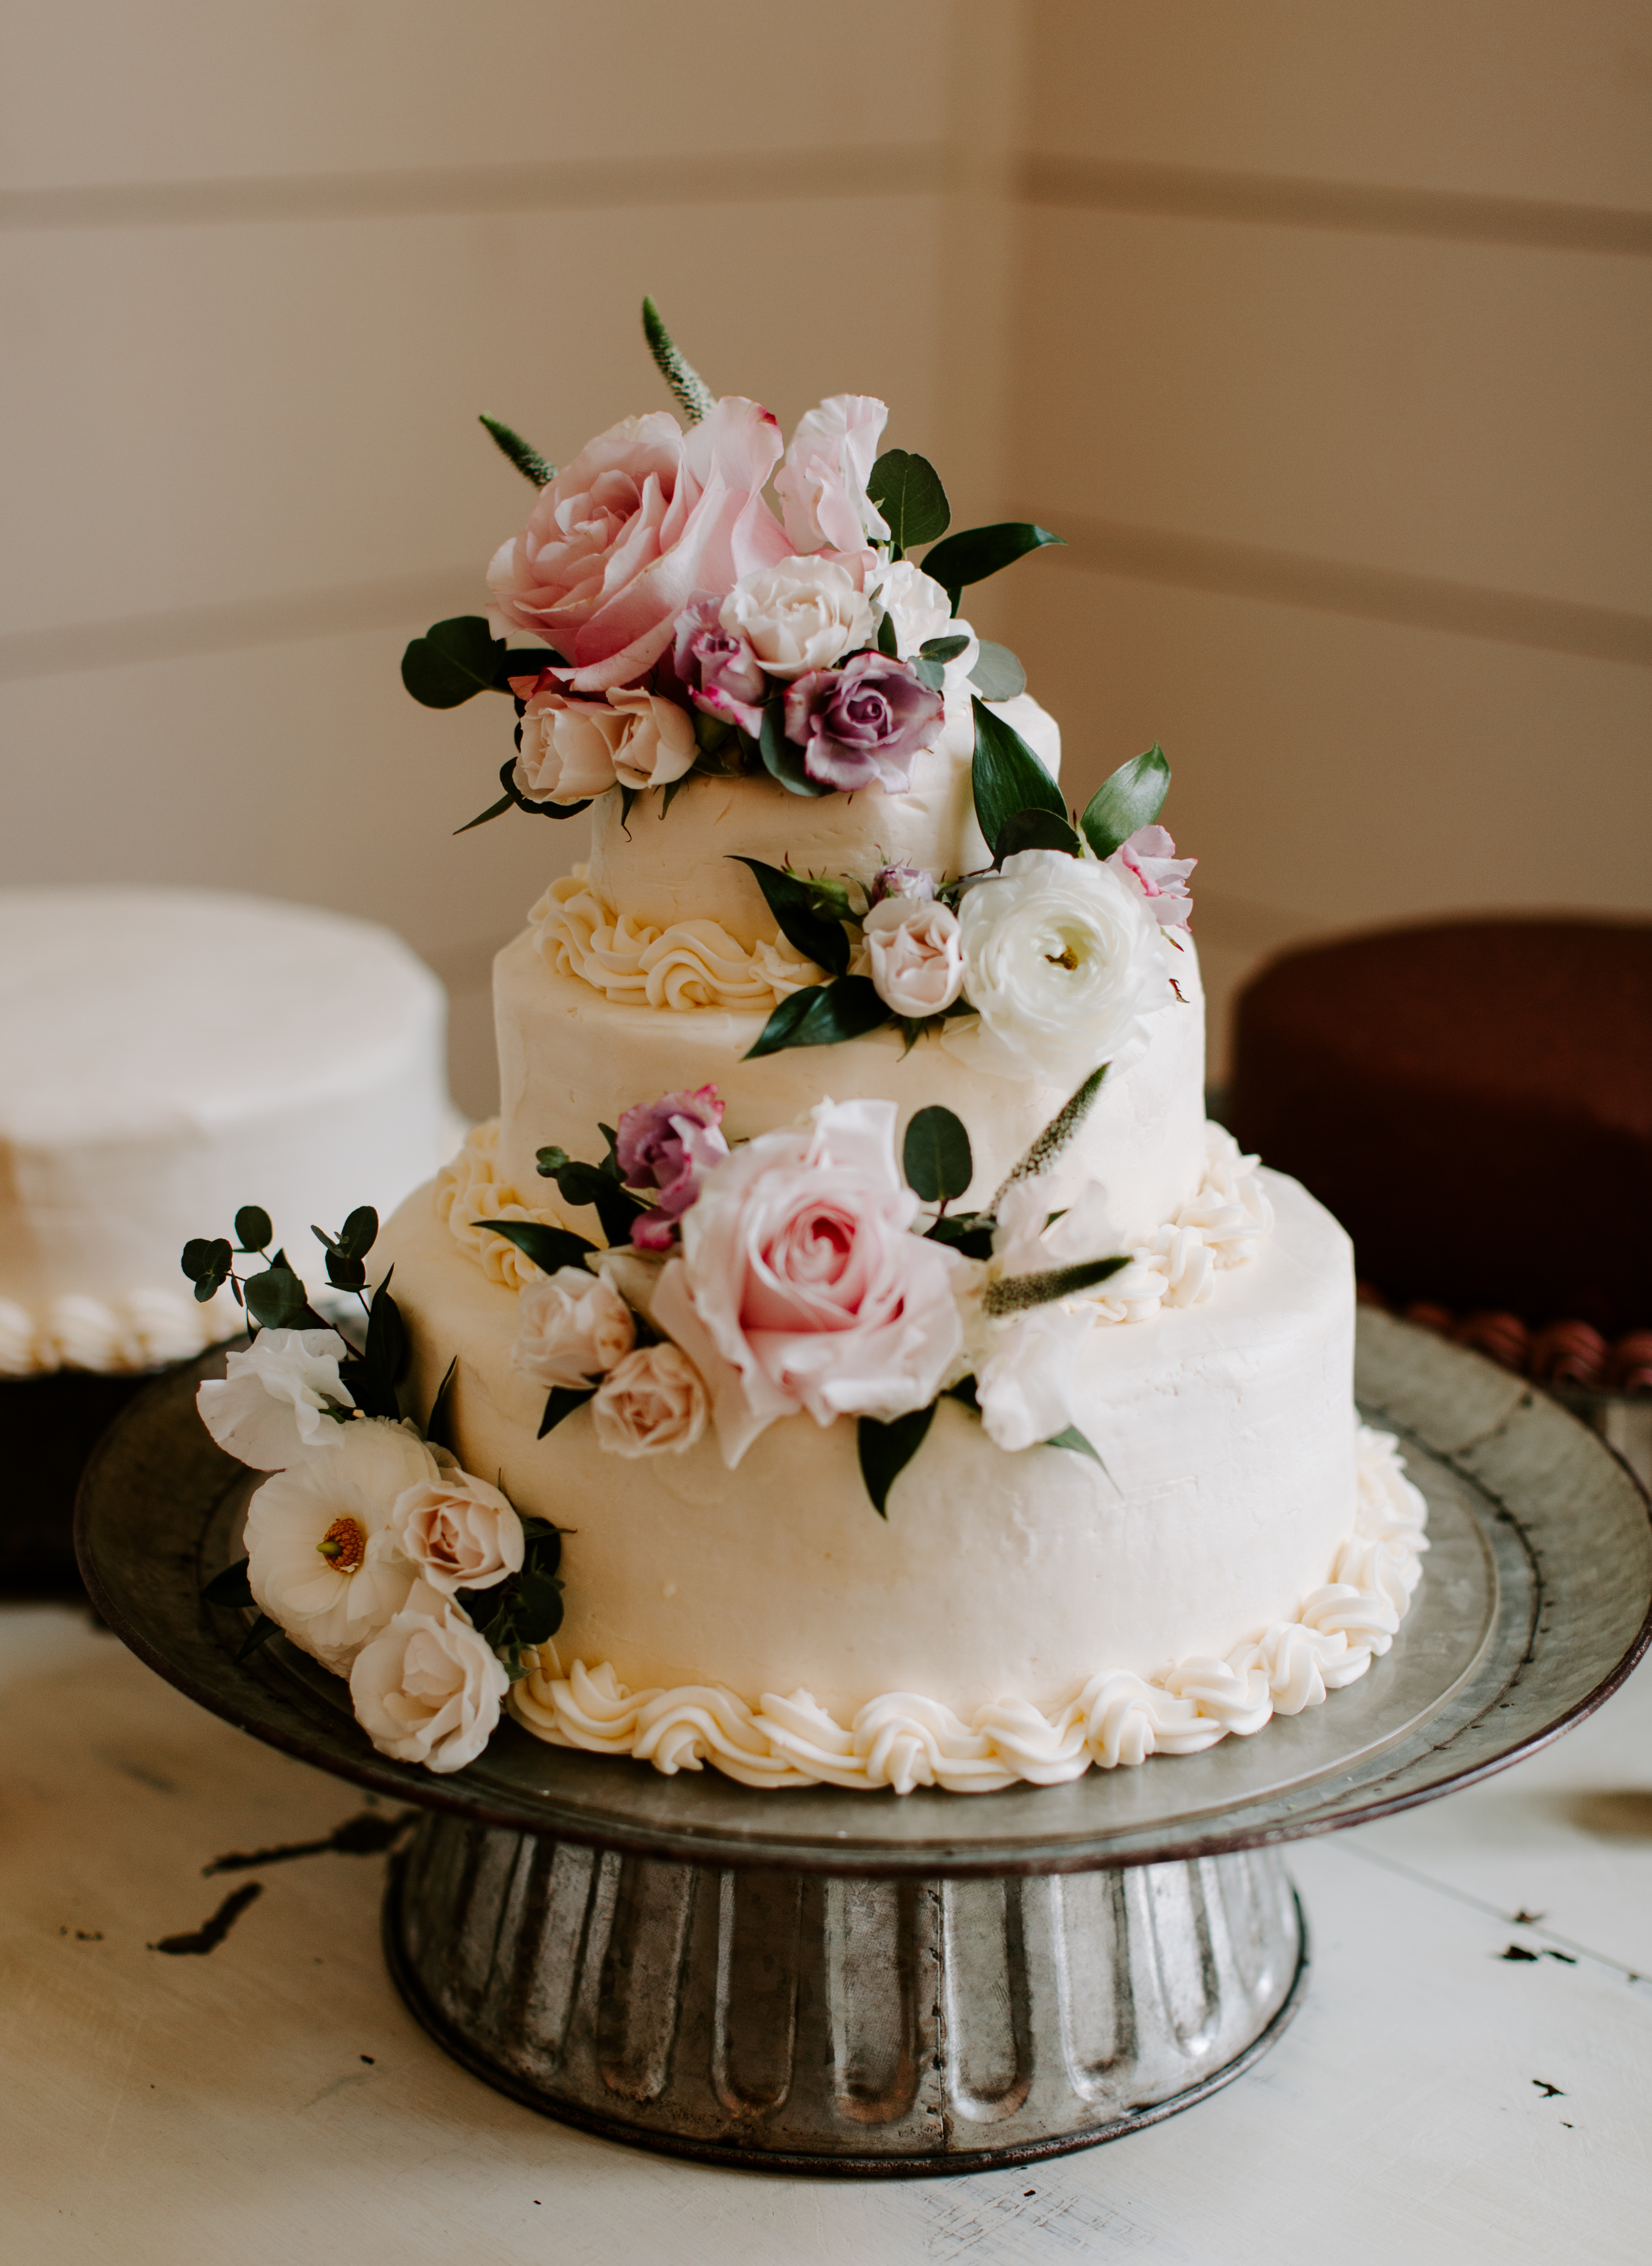 White wedding cake with pink and purple roses